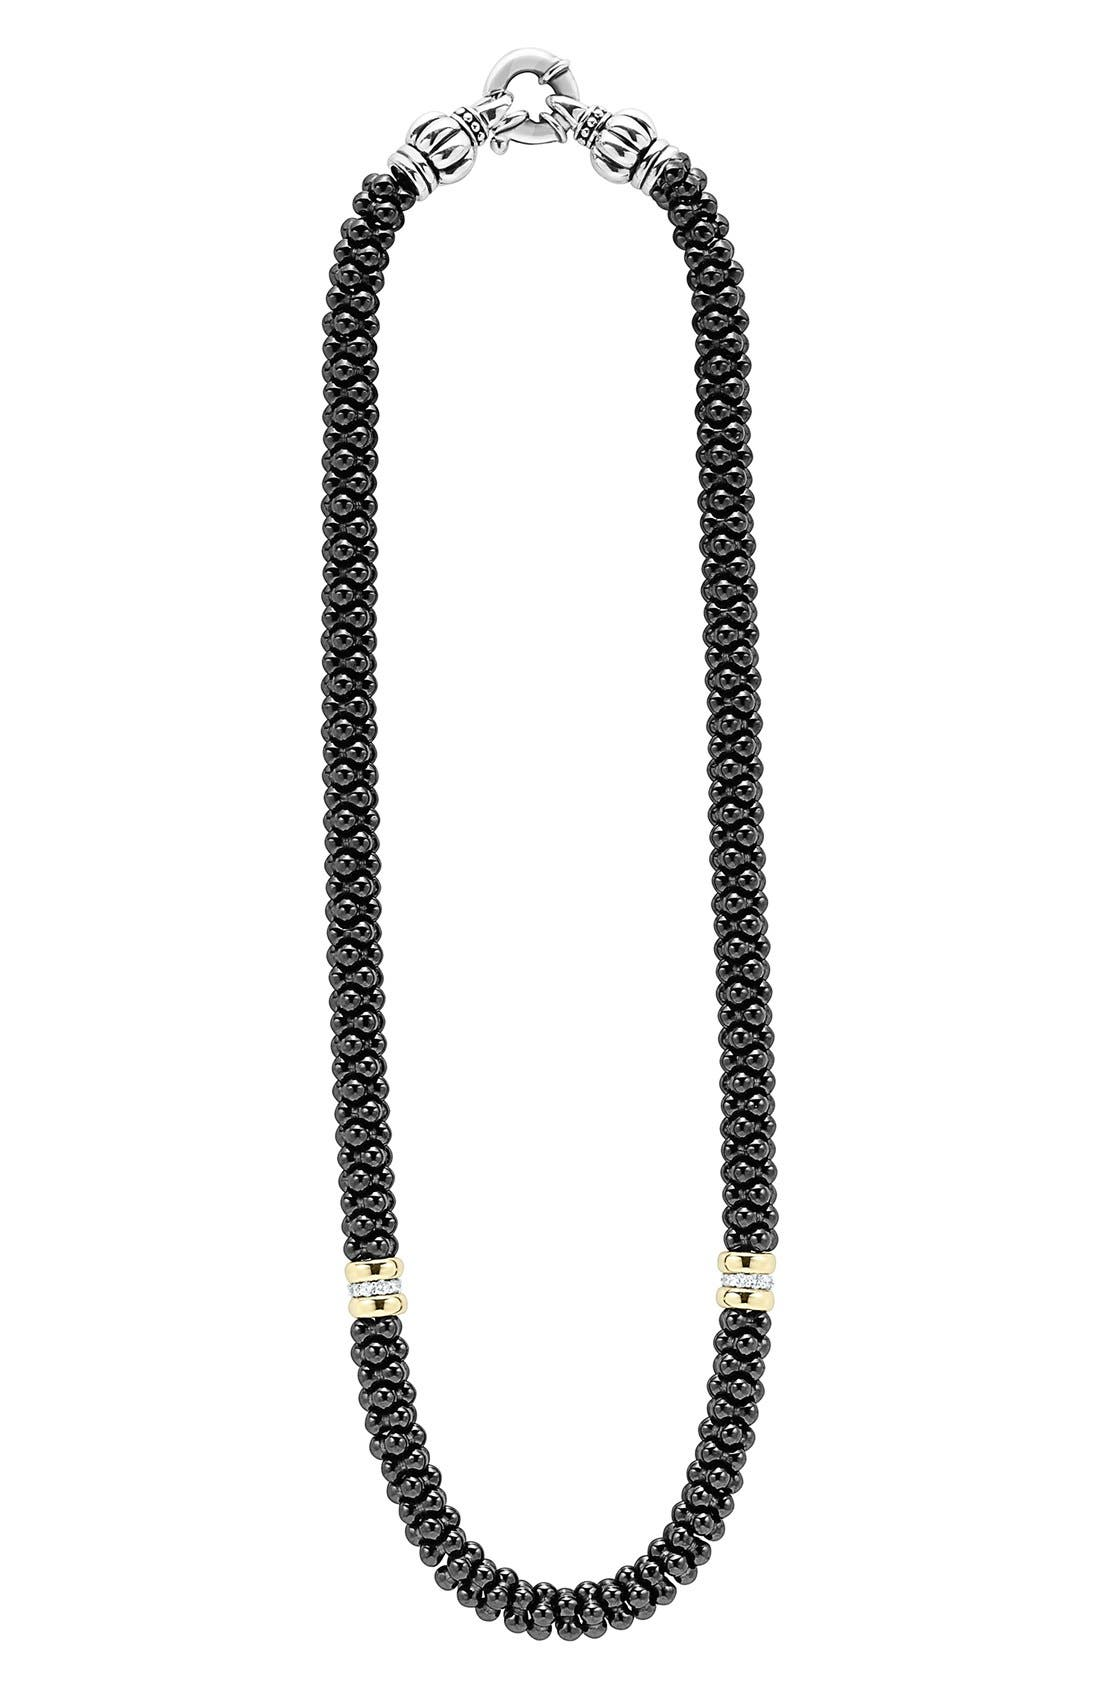 LAGOS Black Caviar 7mm Beaded Diamond Station Necklace